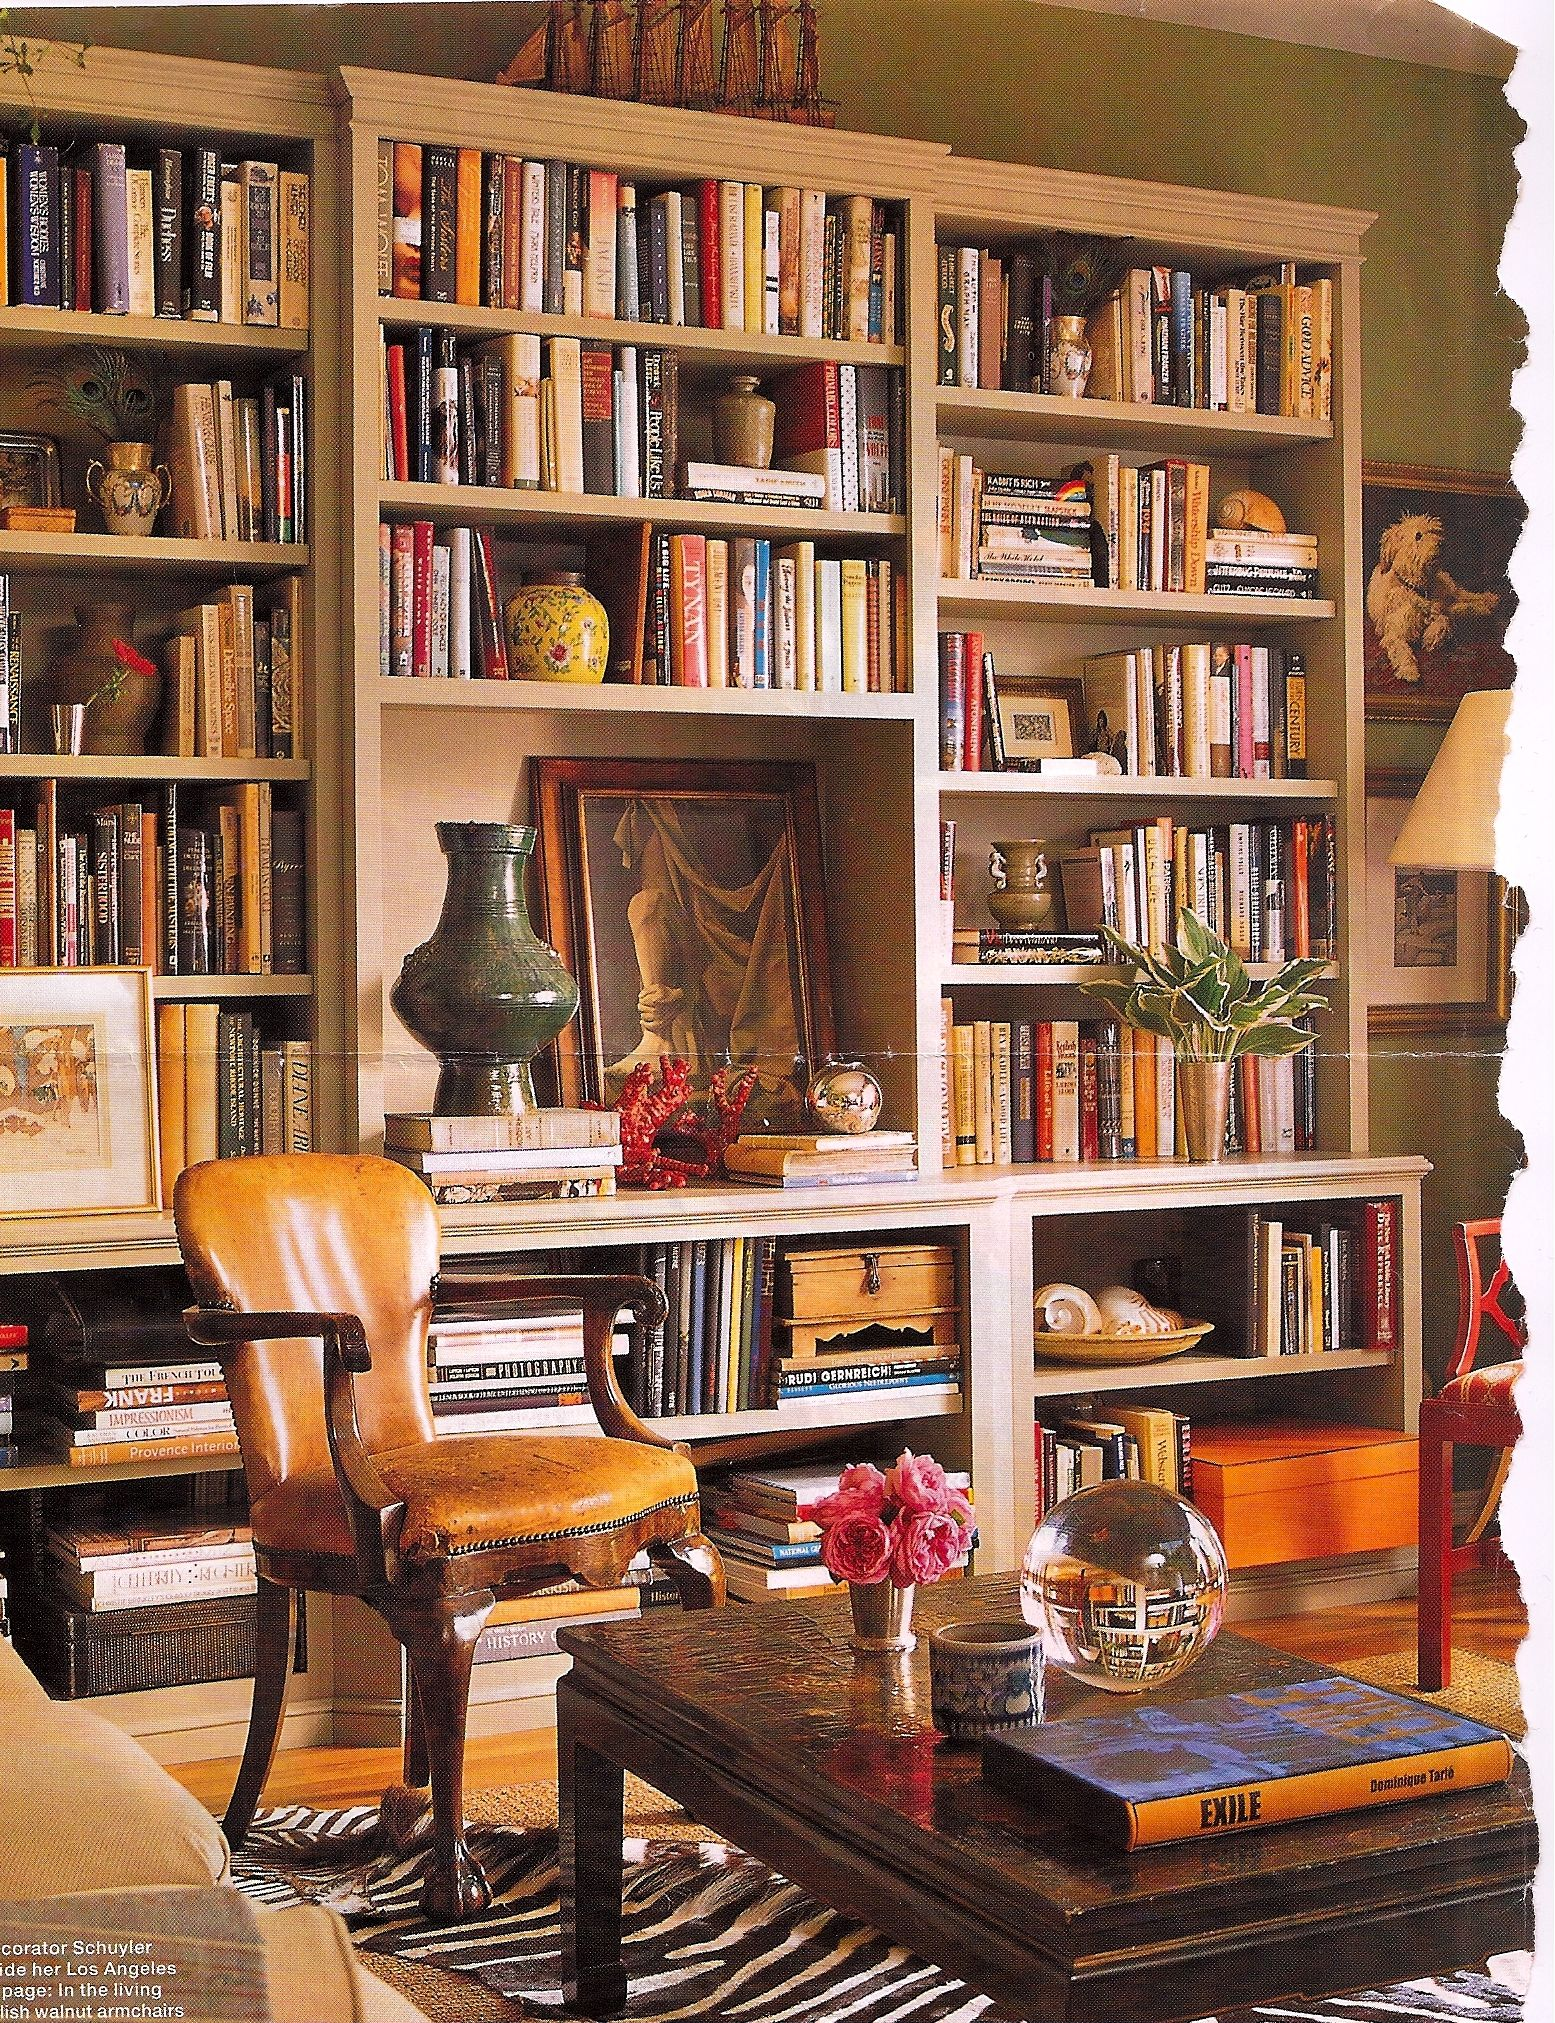 Living Room Like A Library: Inspiration For One Room Of The Home Library